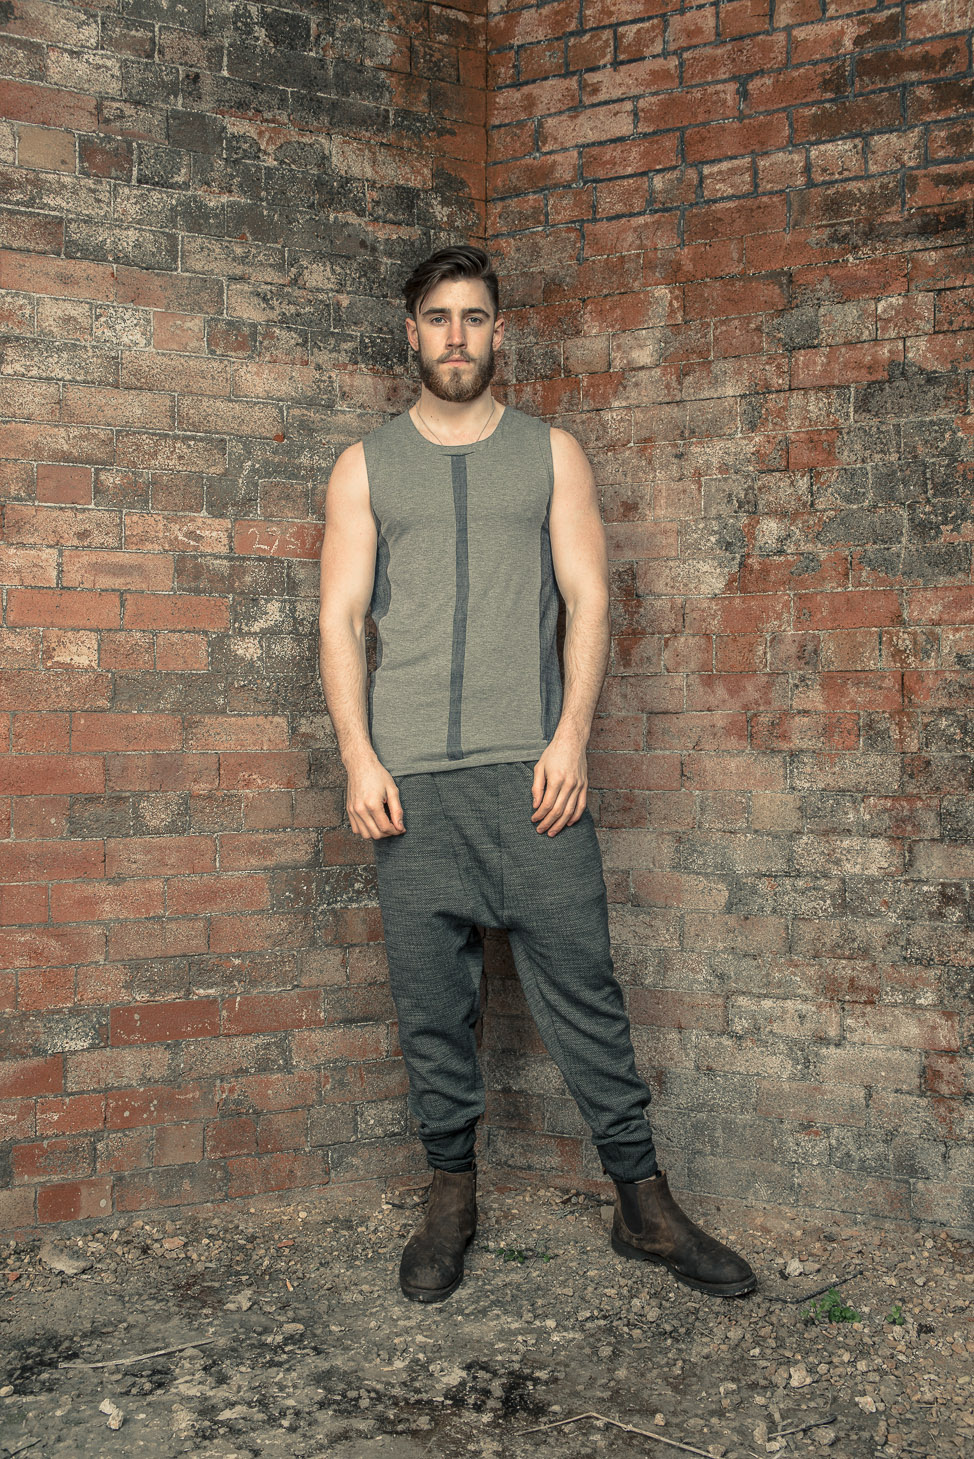 zaramia-ava-zaramiaava-leeds-fashion-designer-ethical-sustainable-tailored-minimalist-stripe-fitted-versatile-drape-grey-tshirt-top-vest-hareem-trousers-black-grey-texture-styling--7